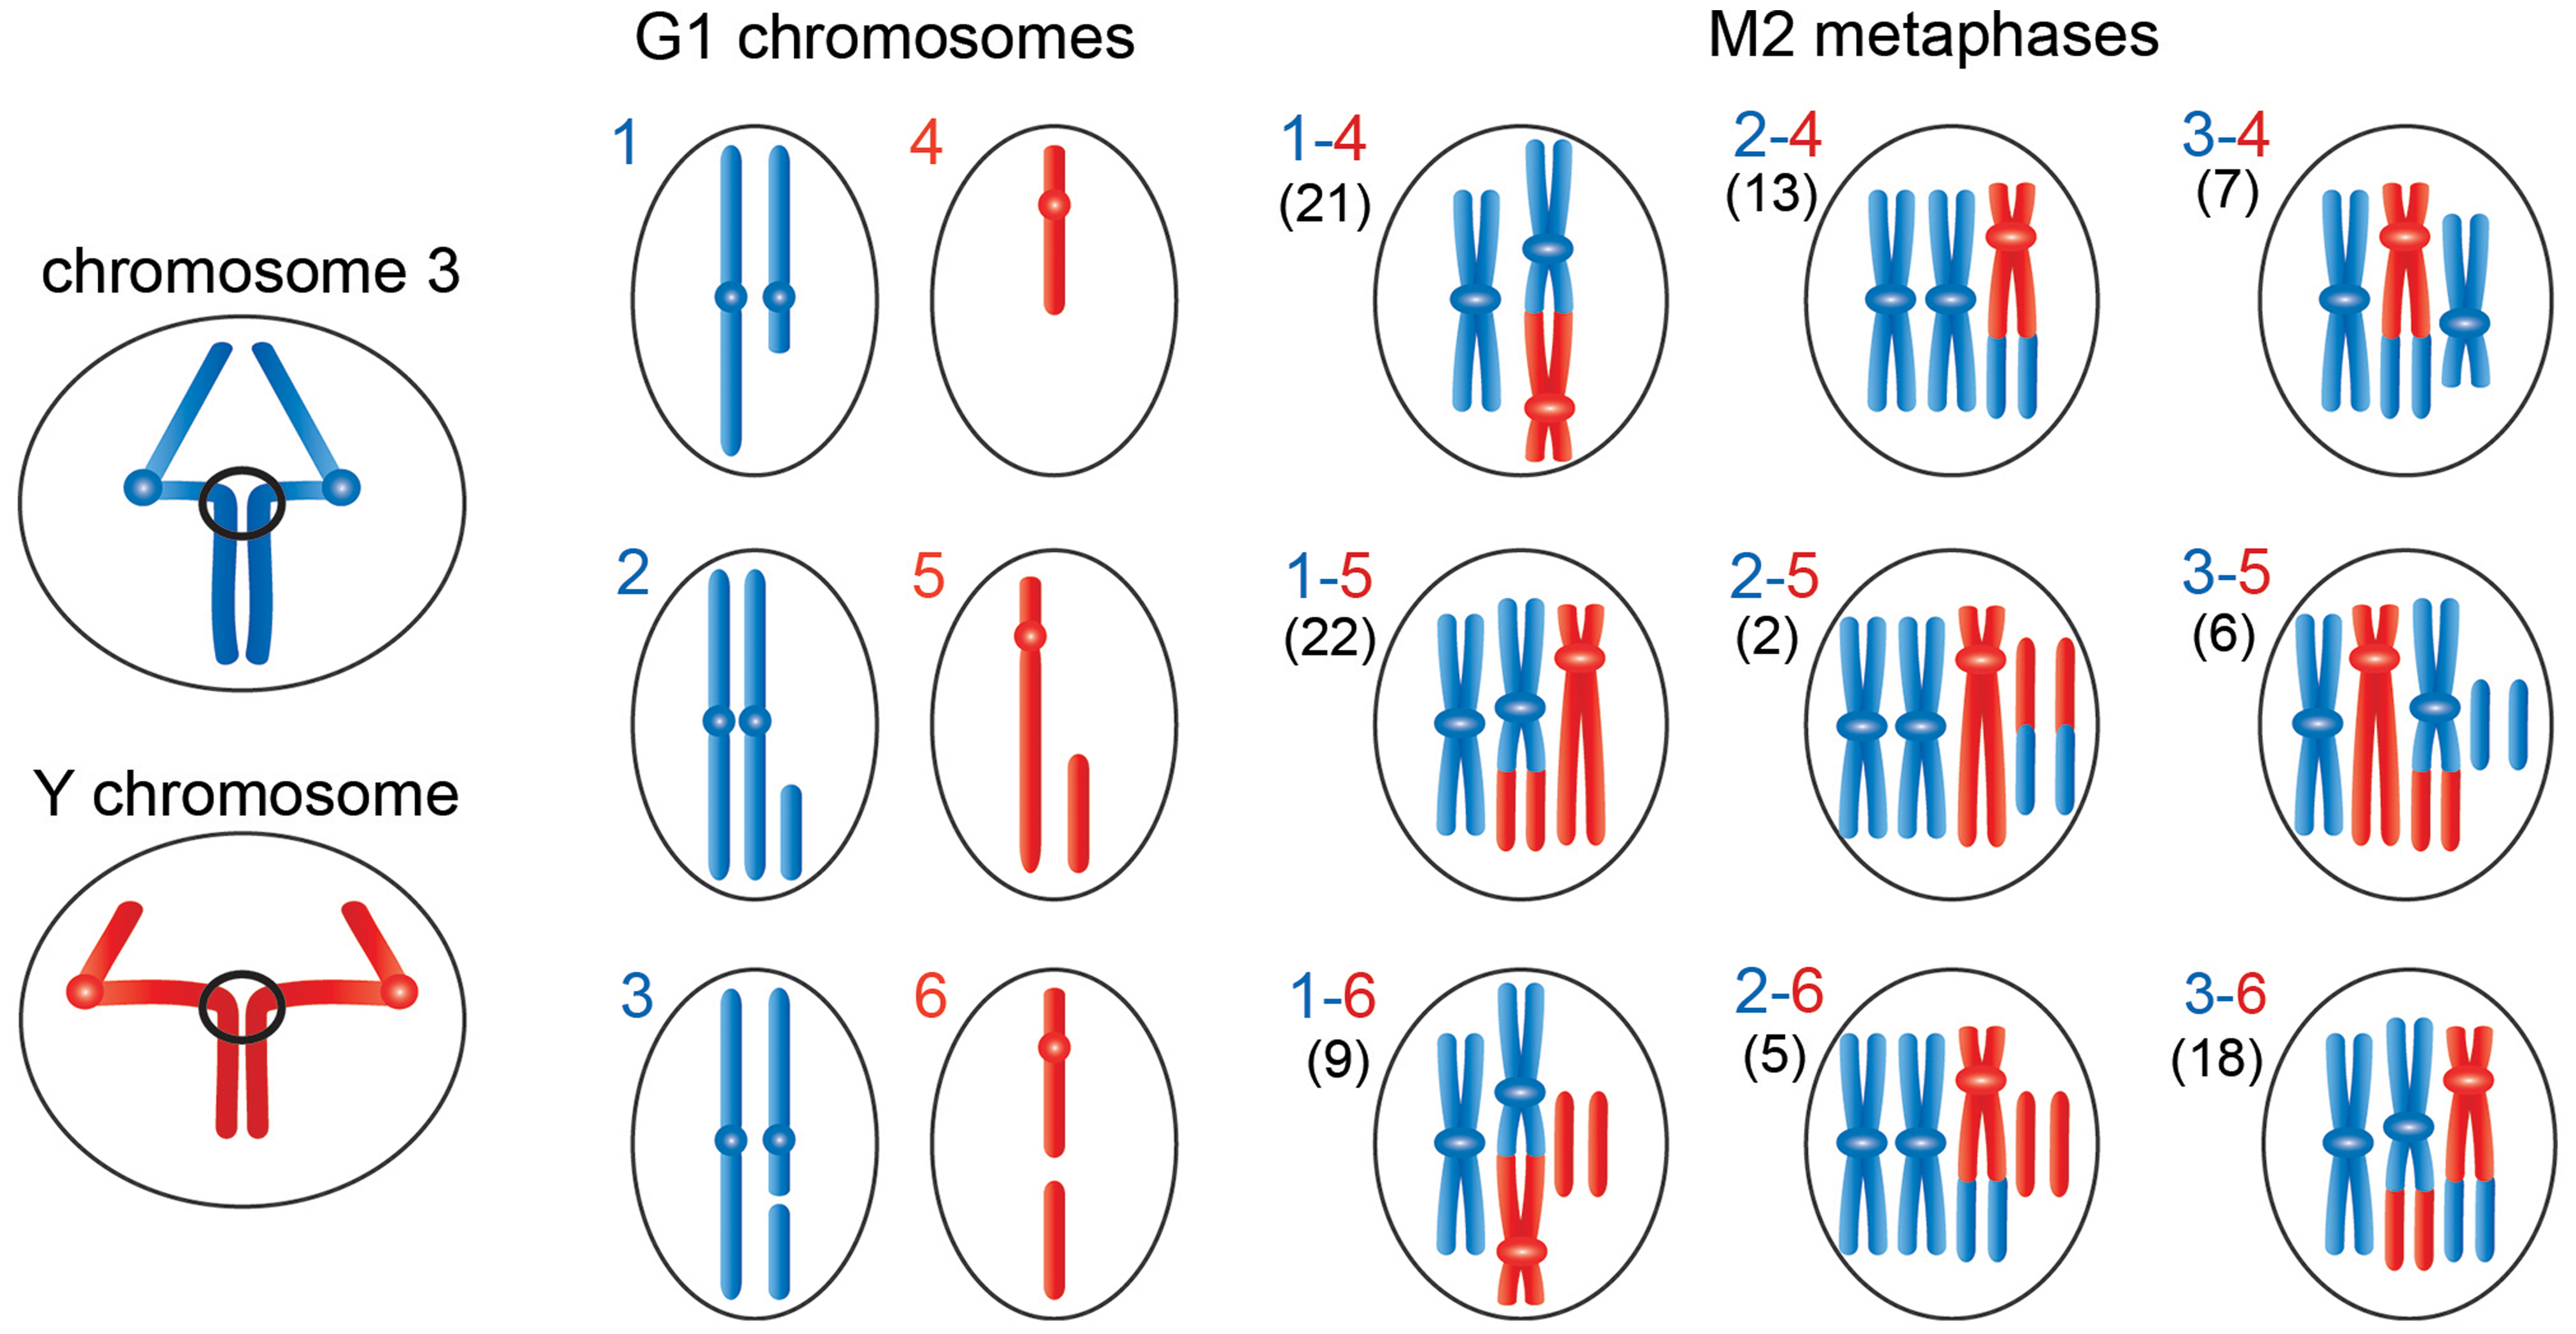 "Schematic representation of the events leading to the chromosome rearrangements shown in <em class=""ref"">Figure 3</em>."